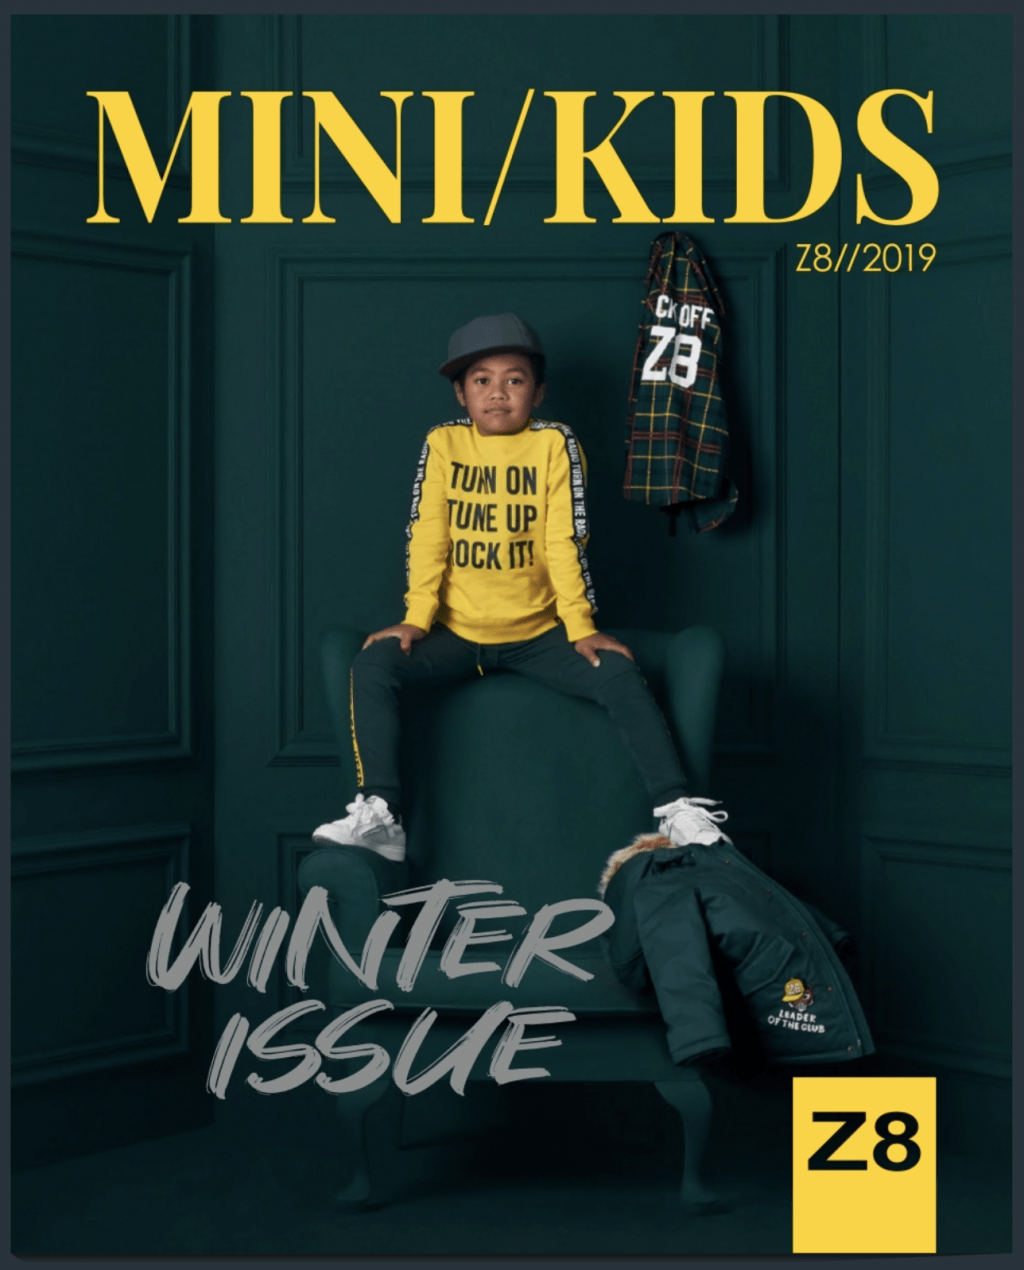 Z8_winter_collectie_2019_2020_mini_kids_magazine_